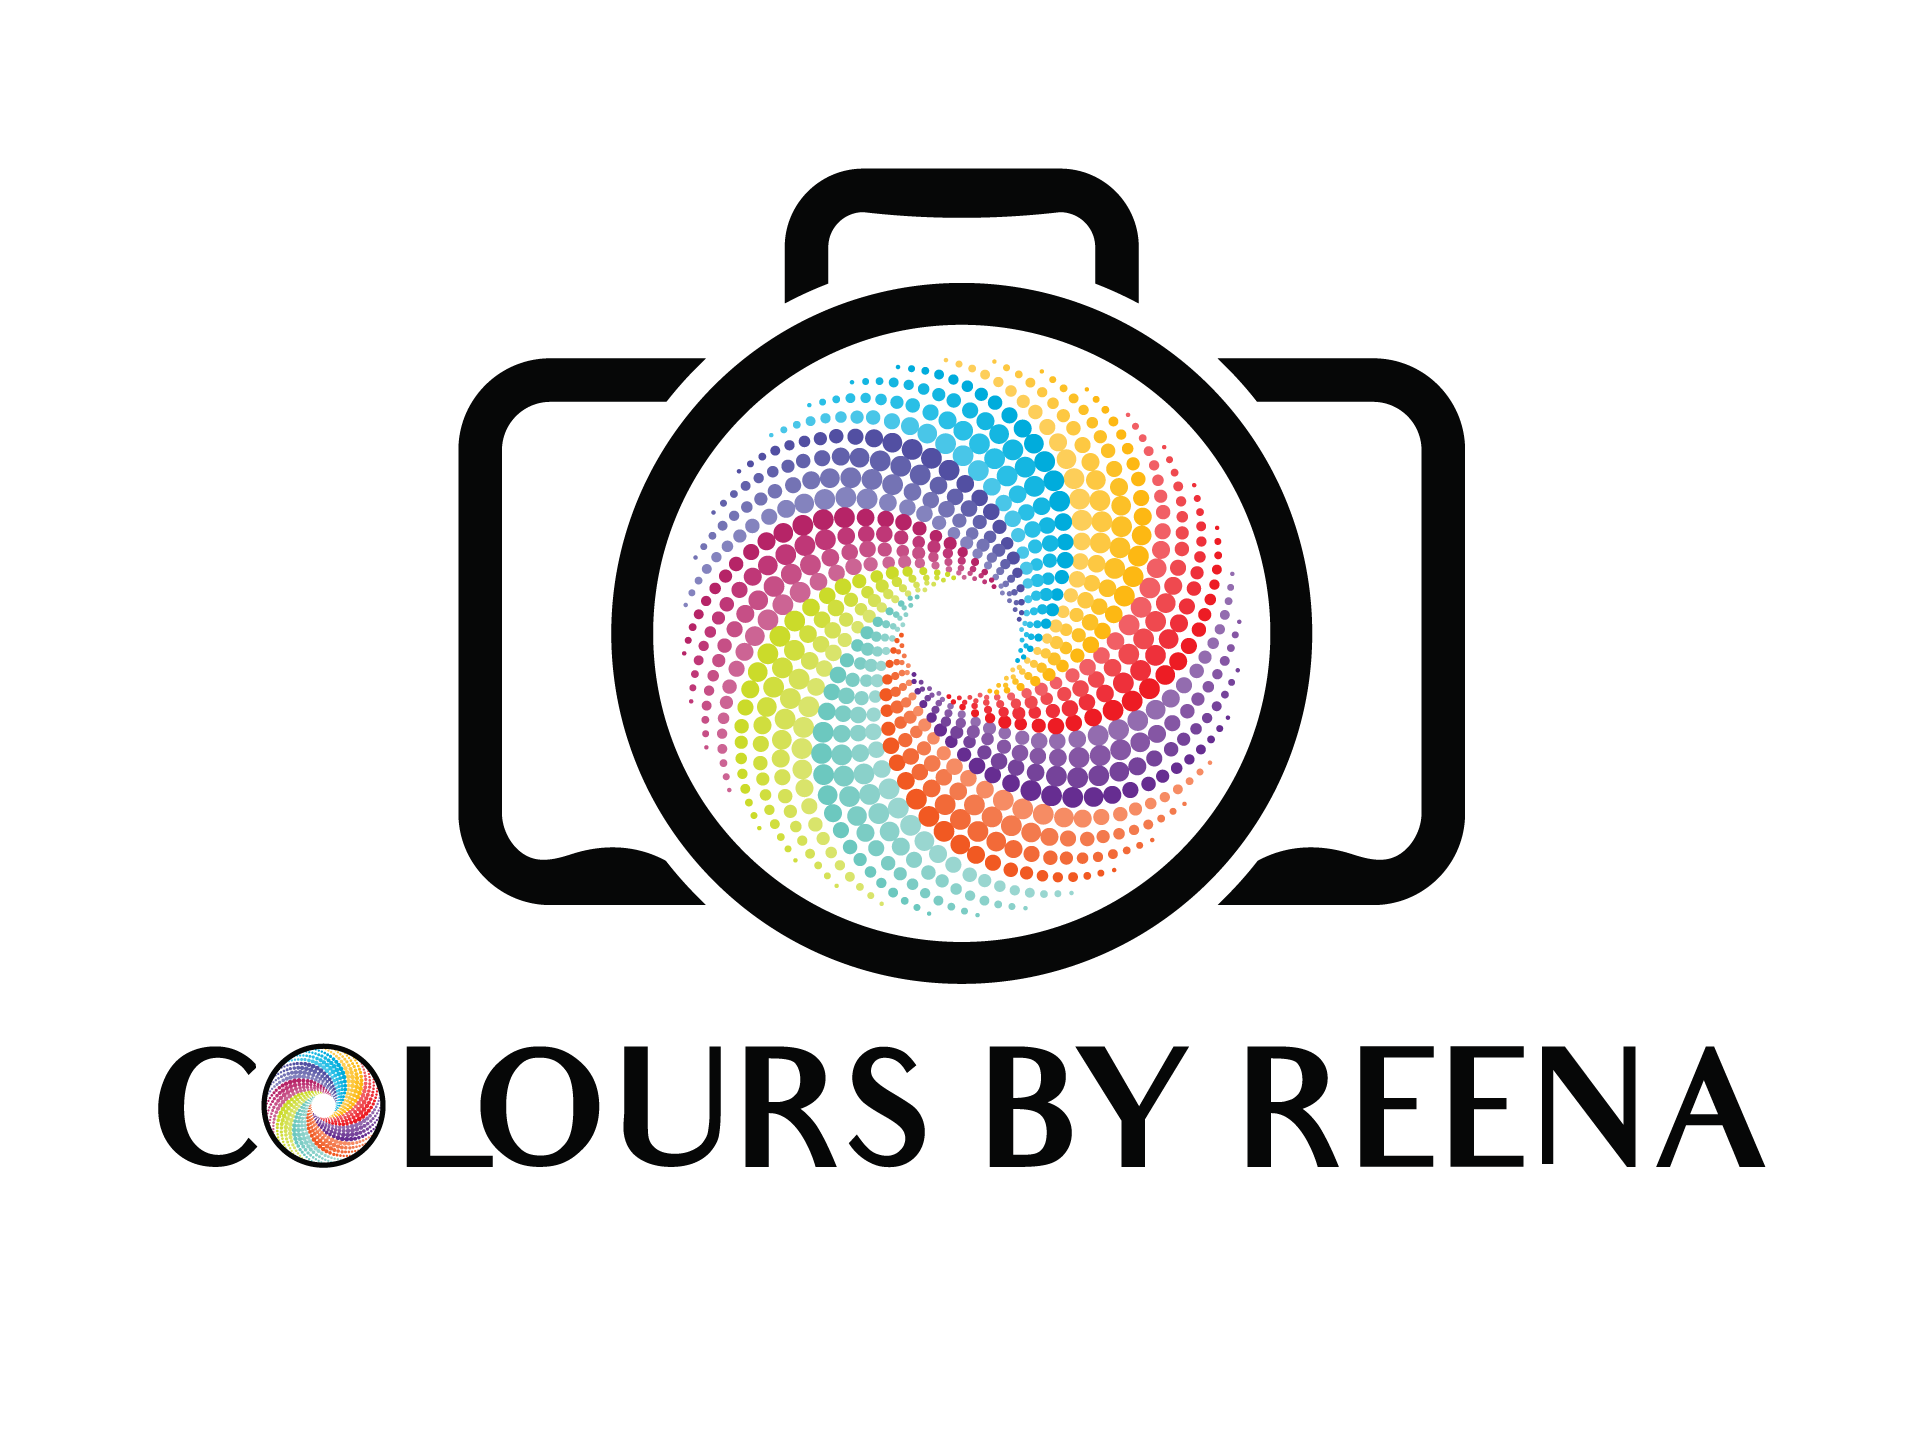 Colours By Reena